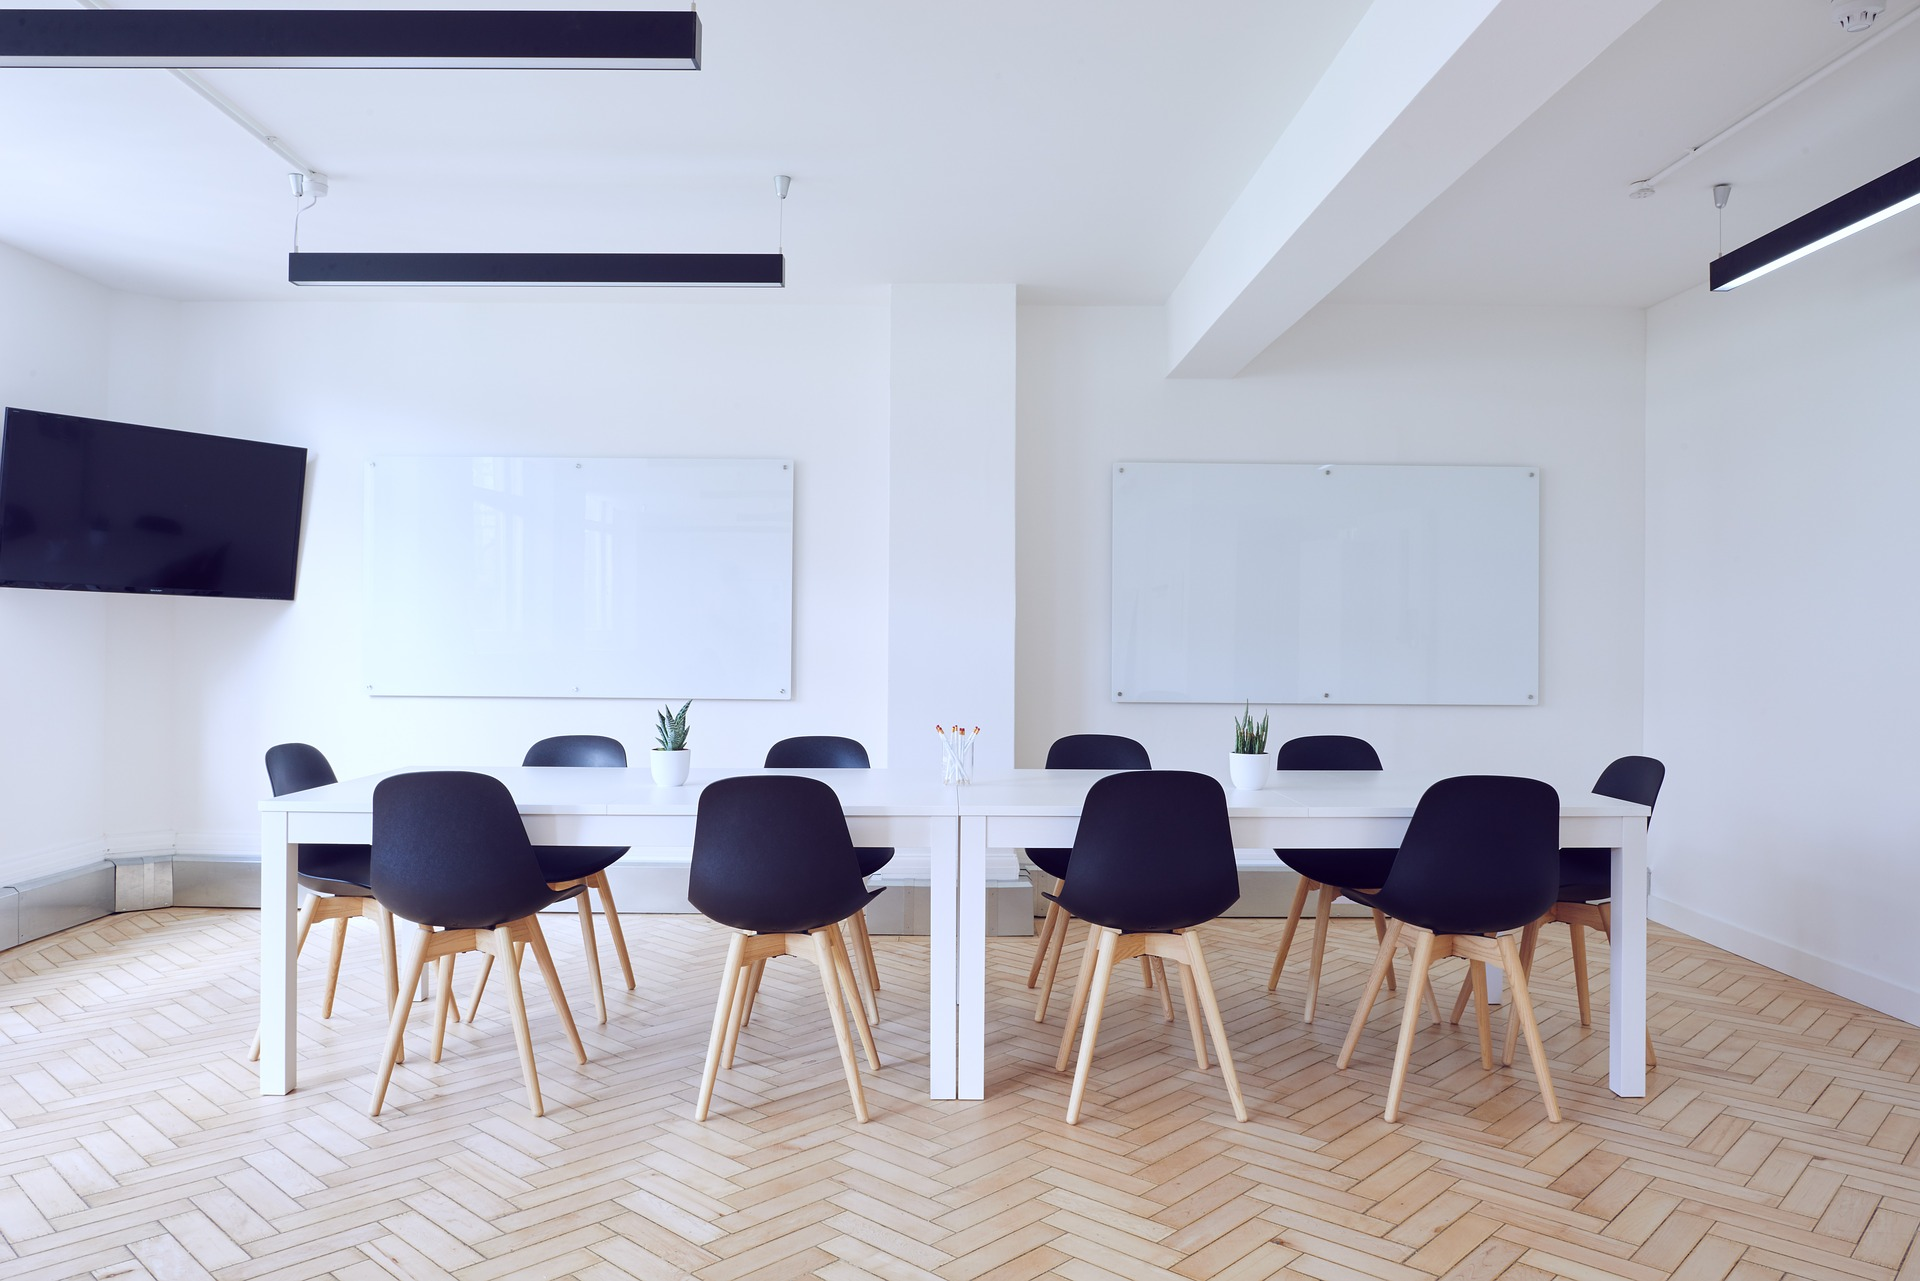 A picture of a meeting room with blue chairs